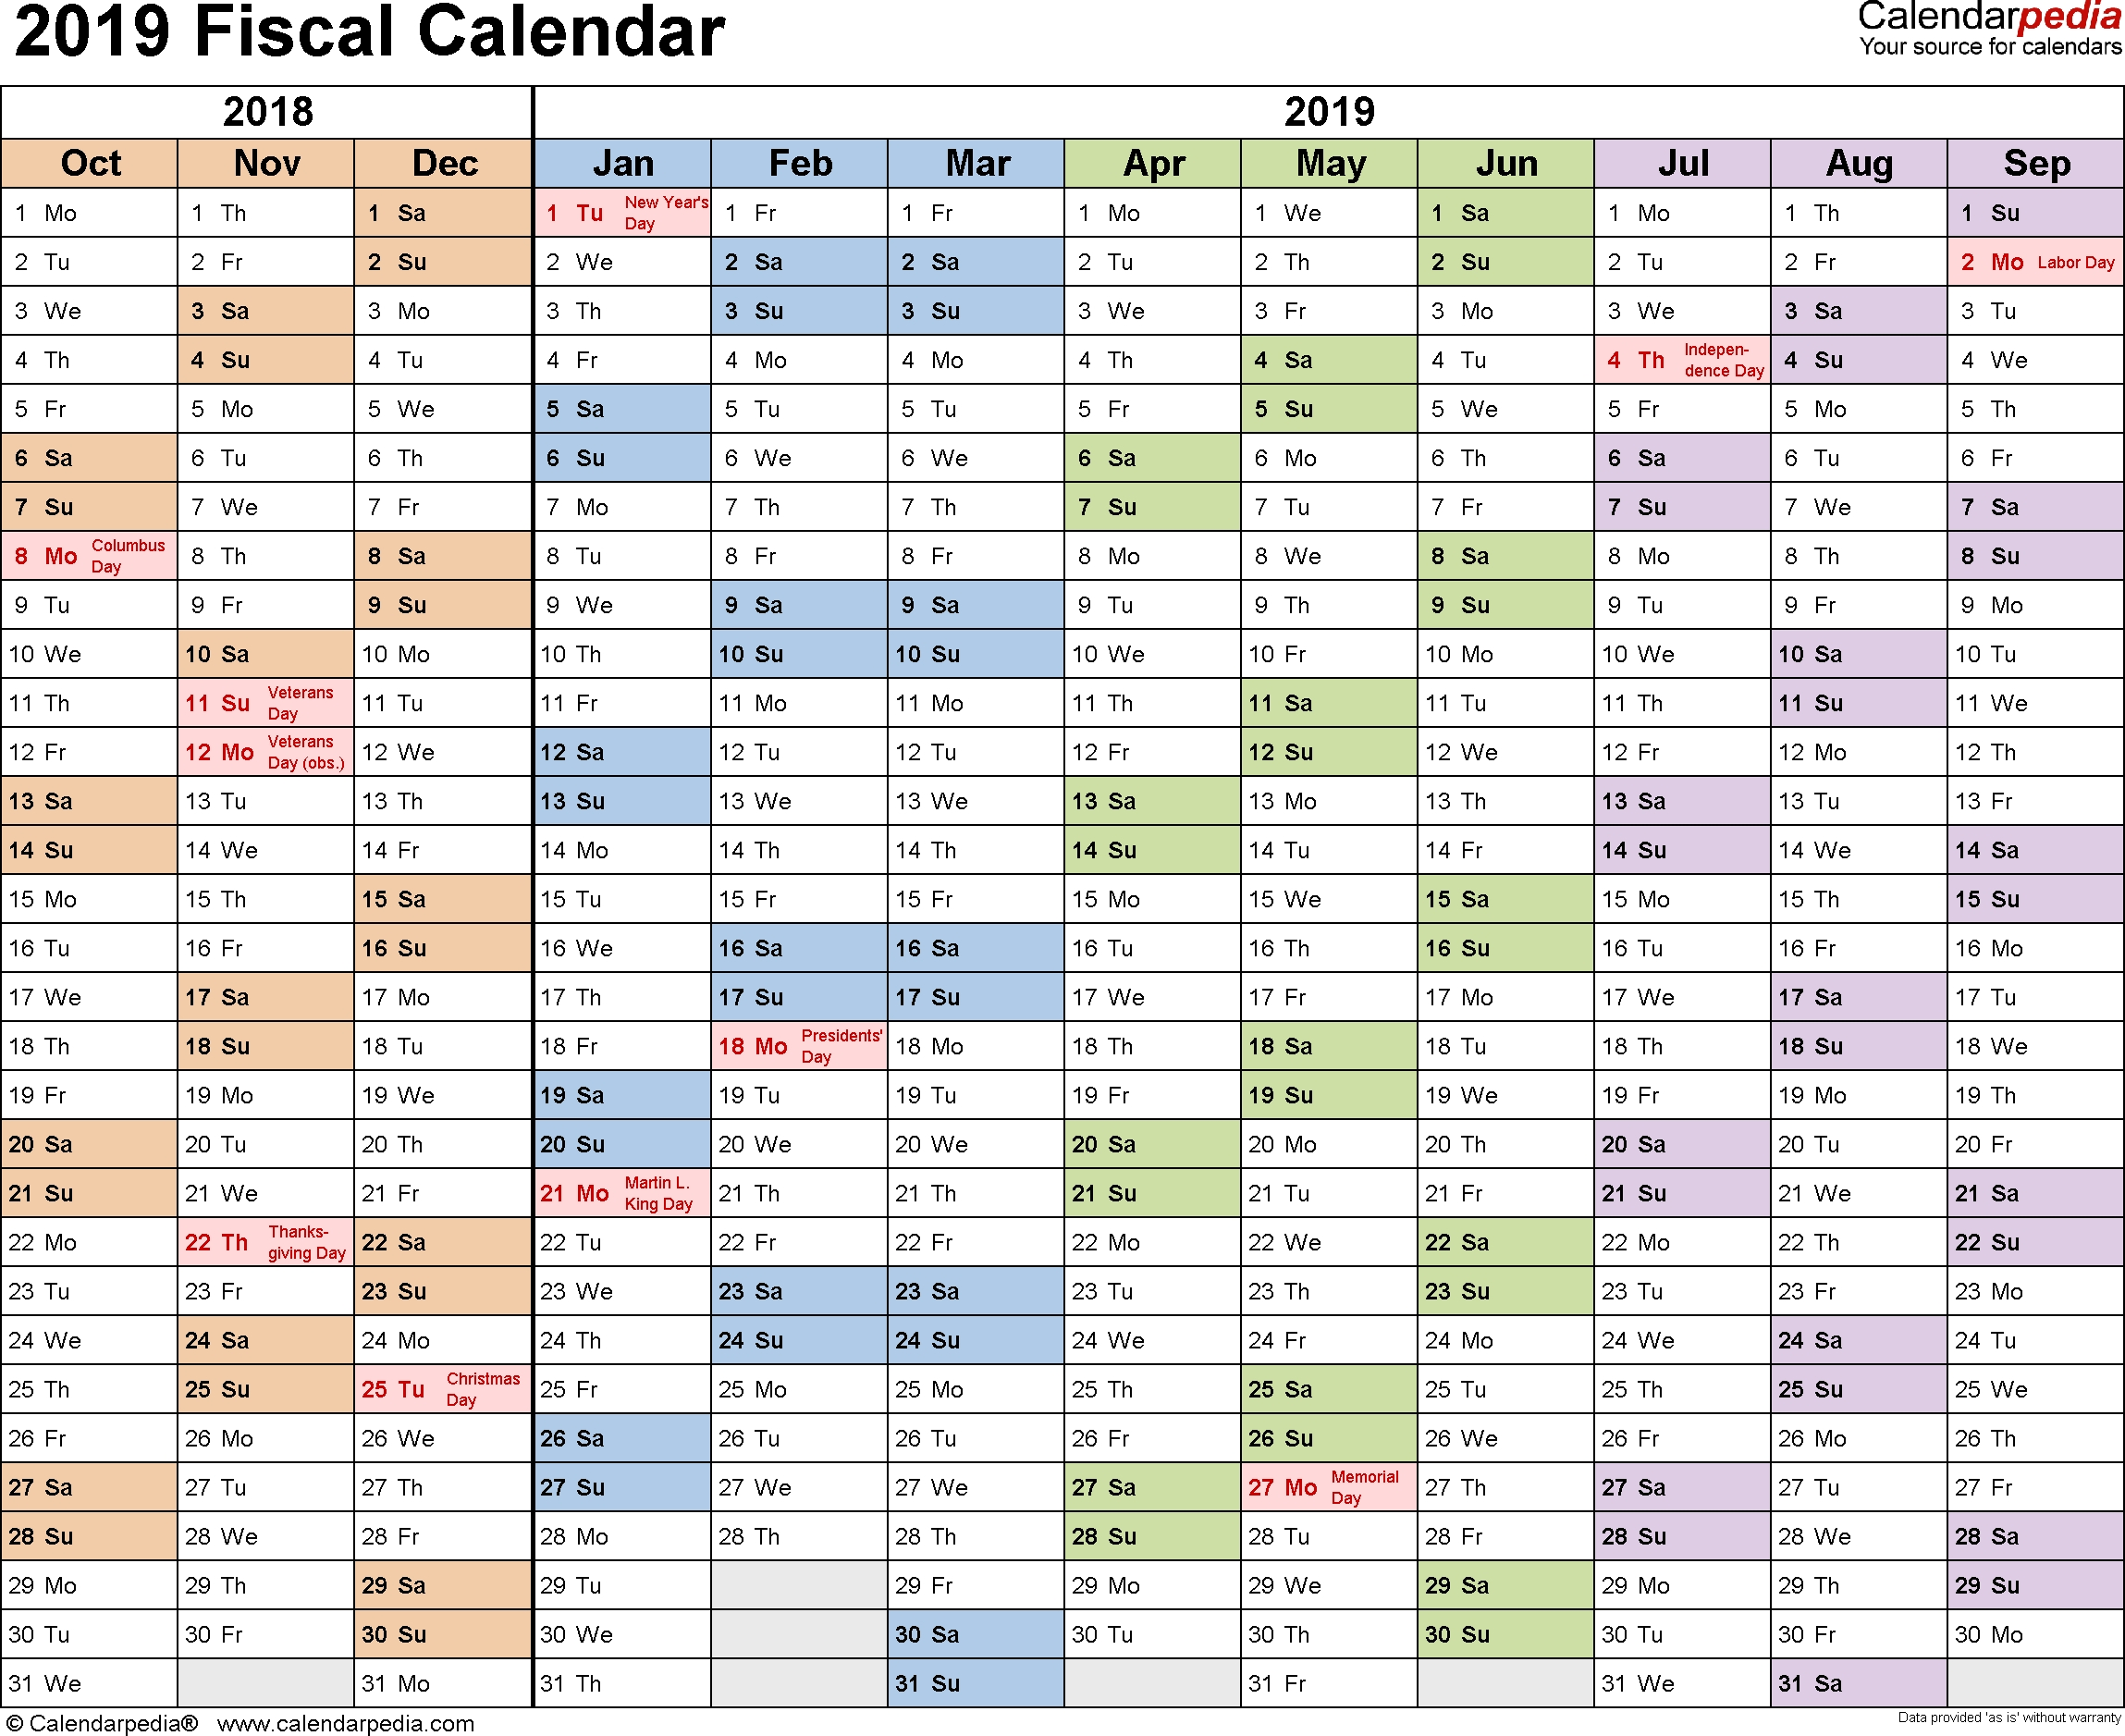 Fiscal Calendars 2019 As Free Printable Pdf Templates for 2019-2020 Fiscal Calendar 4 4 5